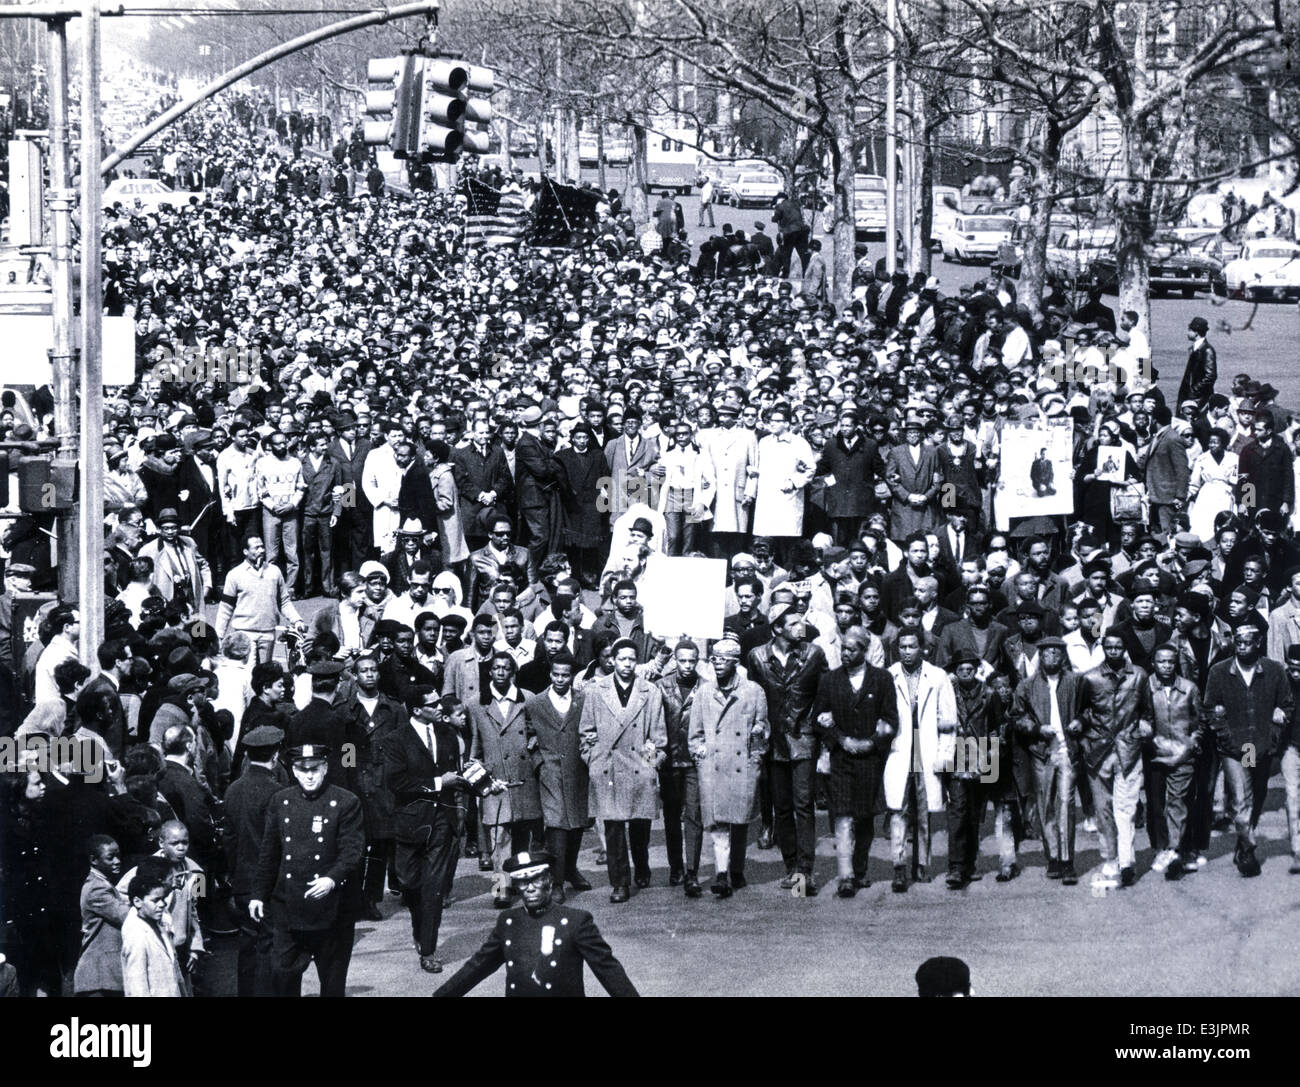 crowd during the funeral of martin luther king,Atlanta, Georgia April 9, 1968 - Stock Image